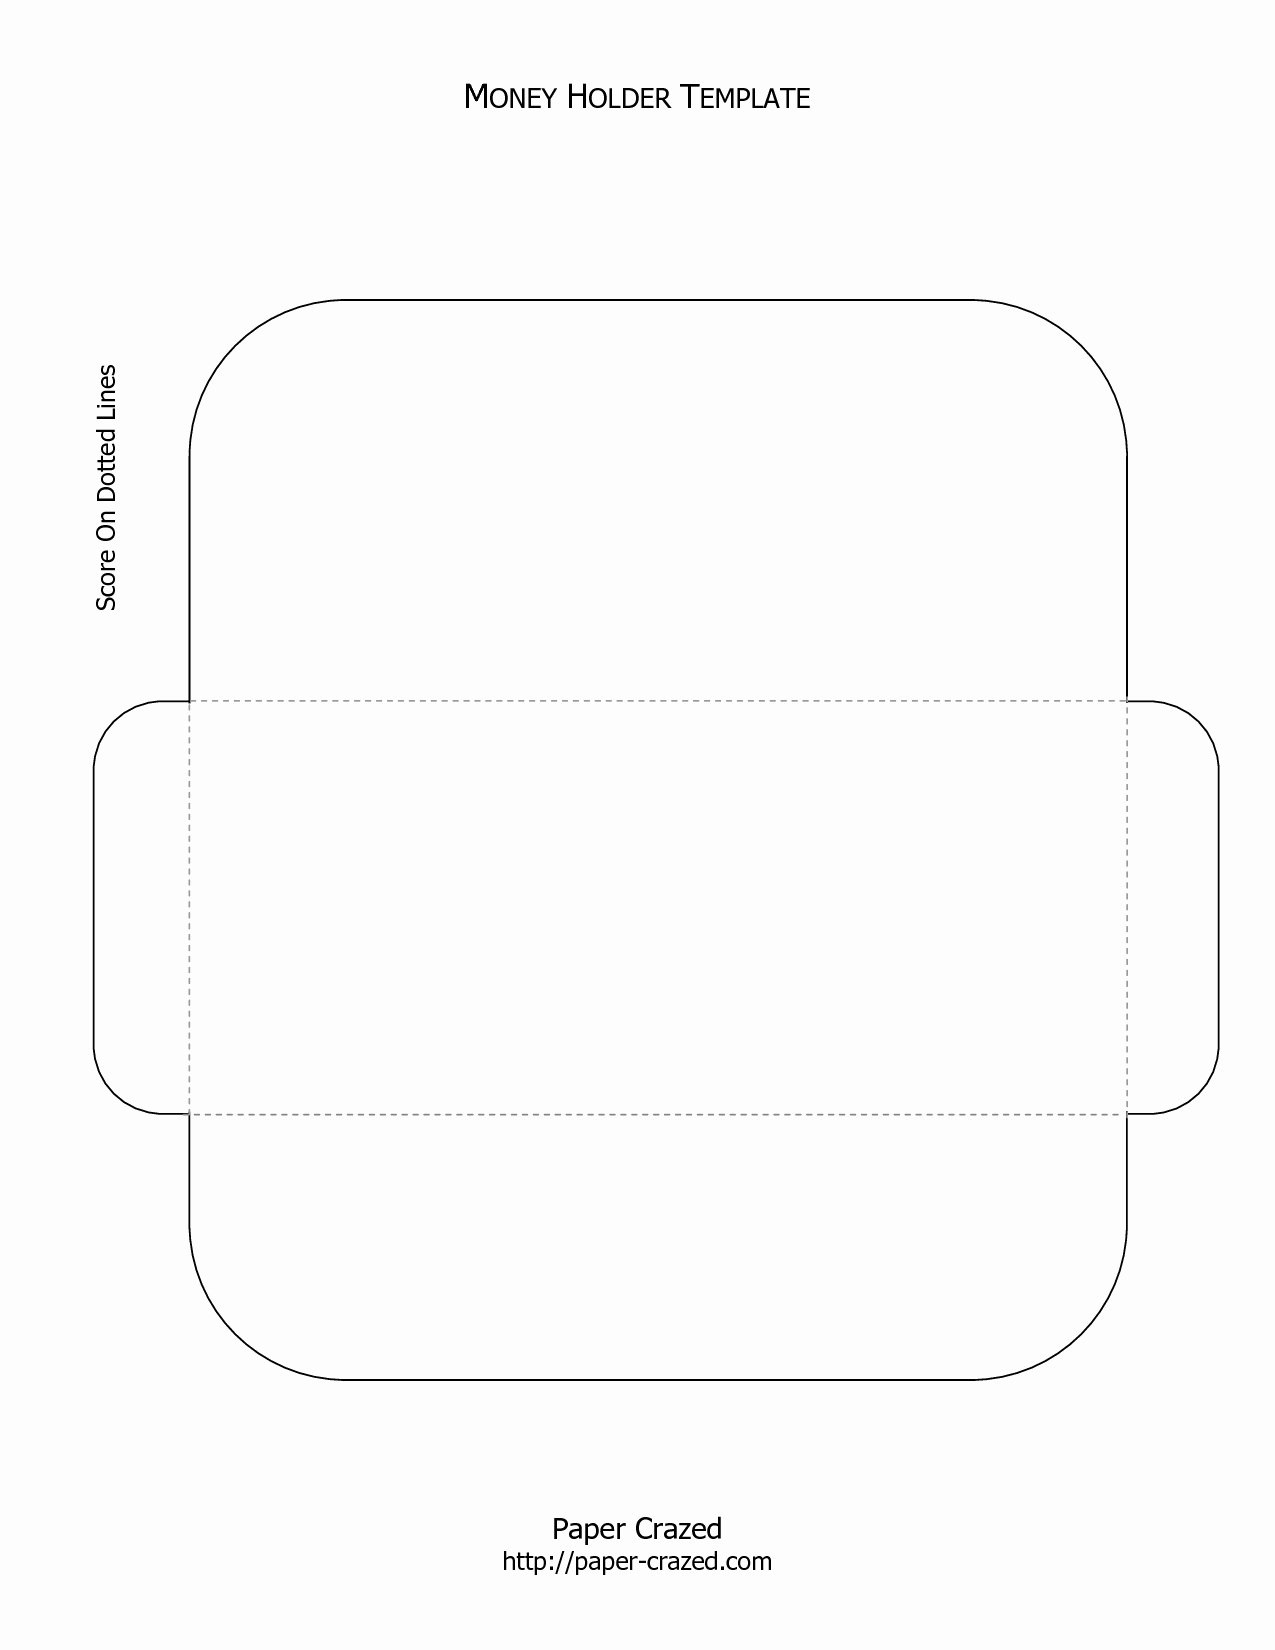 009 Gift Card Envelopes Templates Template Ideas Printable Envelope - Free Printable Gift Card Envelope Template